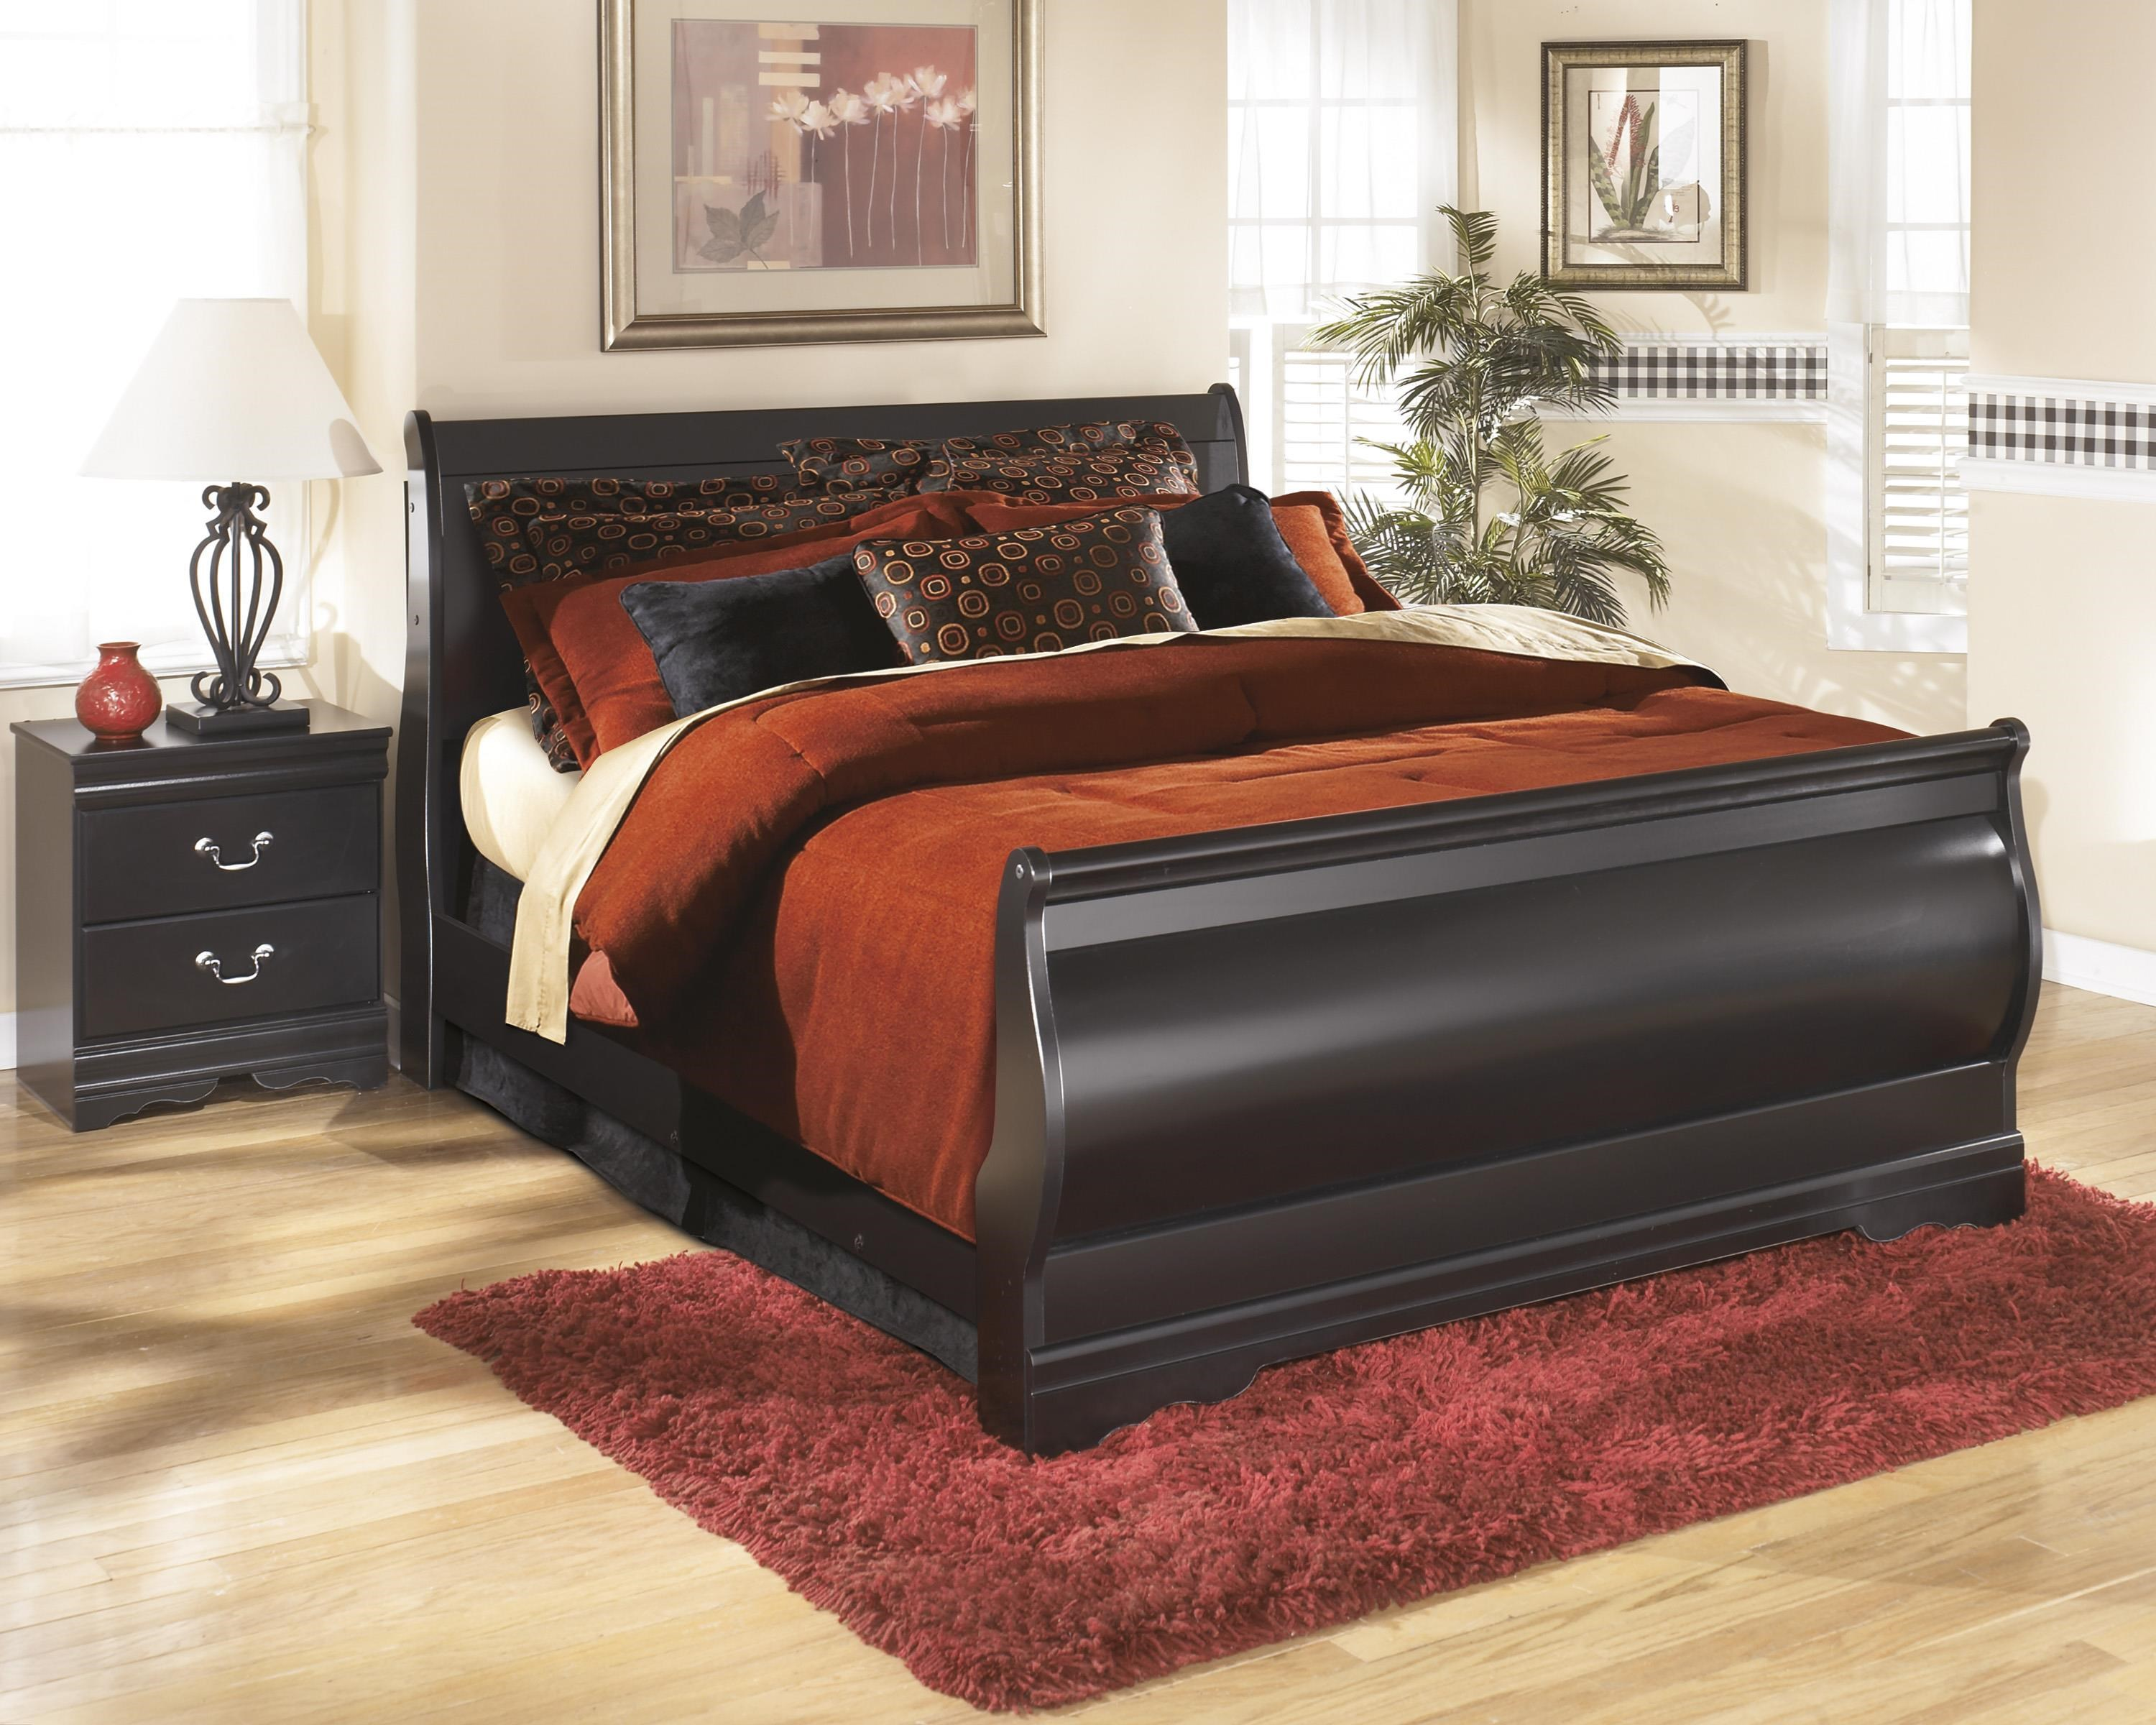 Full Sleigh Bed, Nightstand and Chest Packag